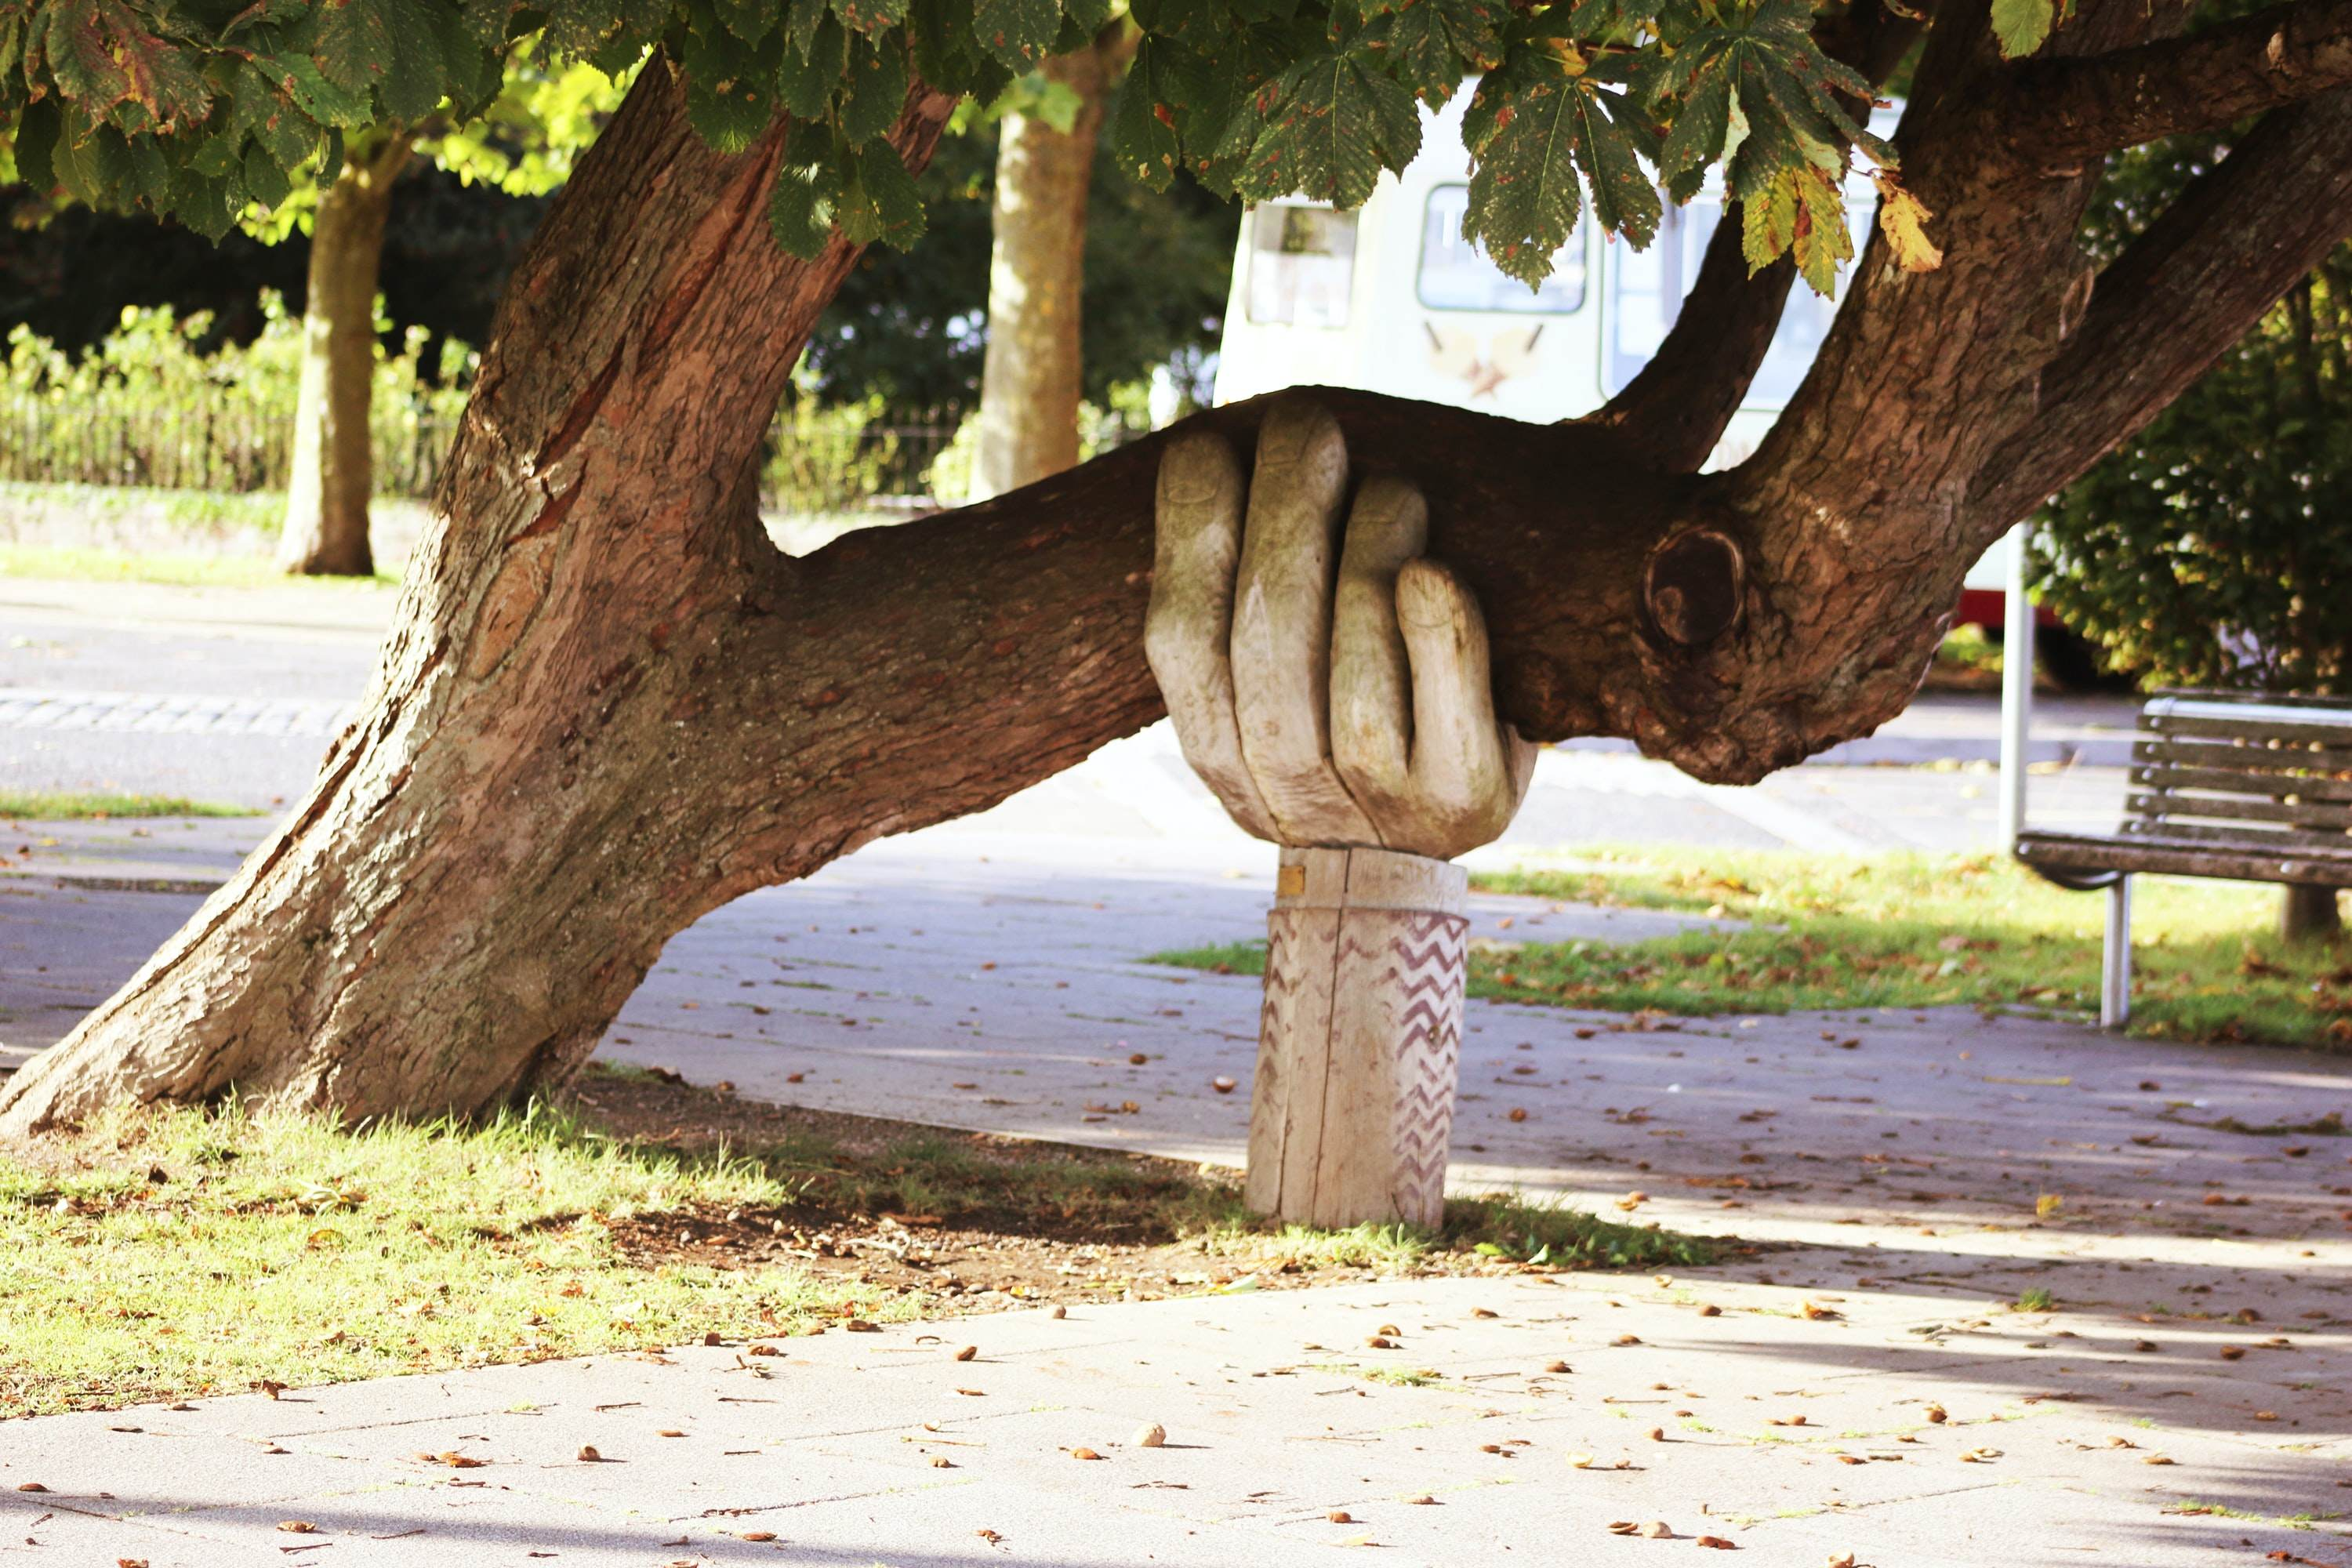 Large carved wooden hand holding up a large tree branch